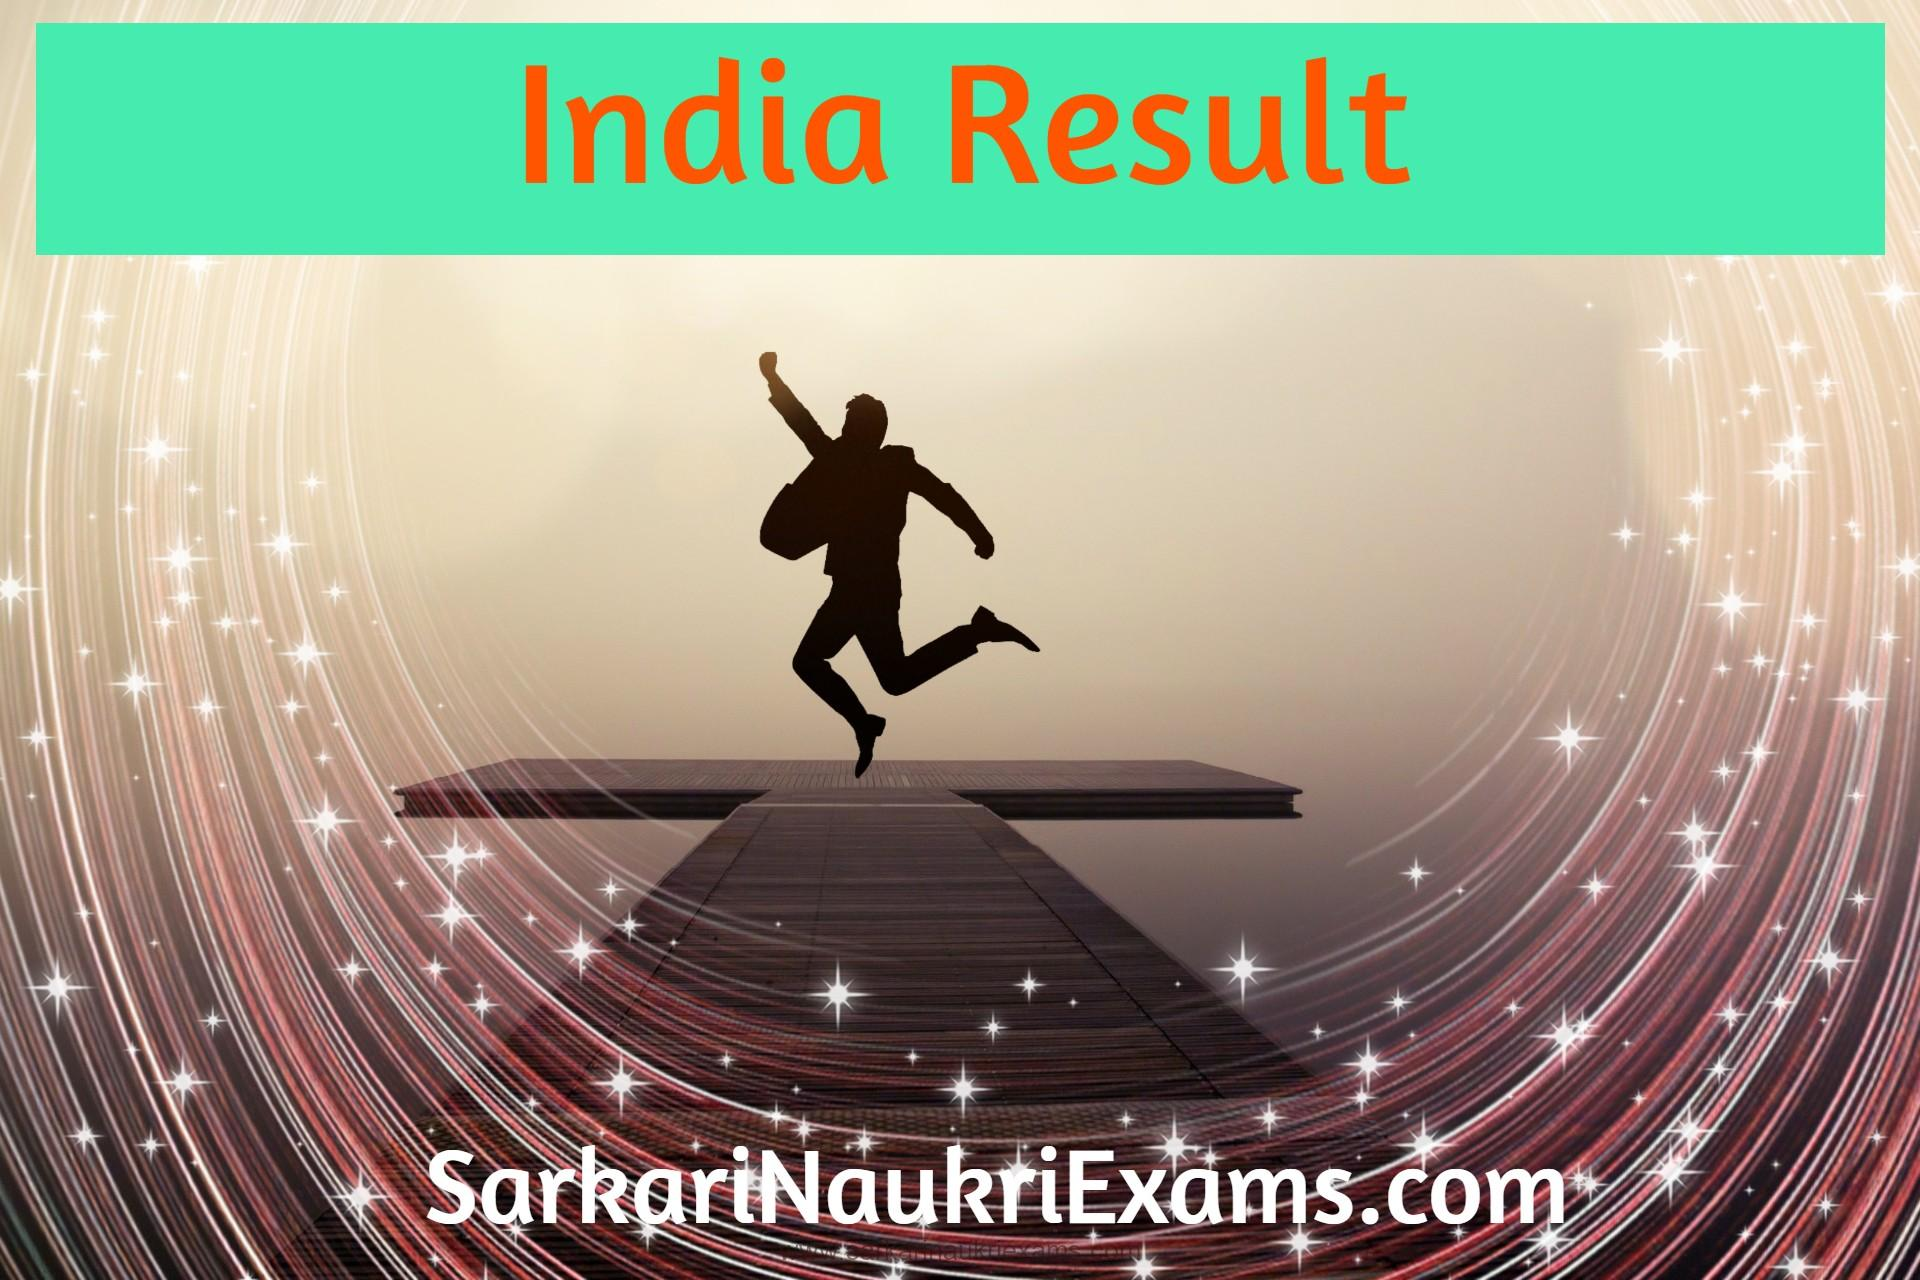 India Result, India Results